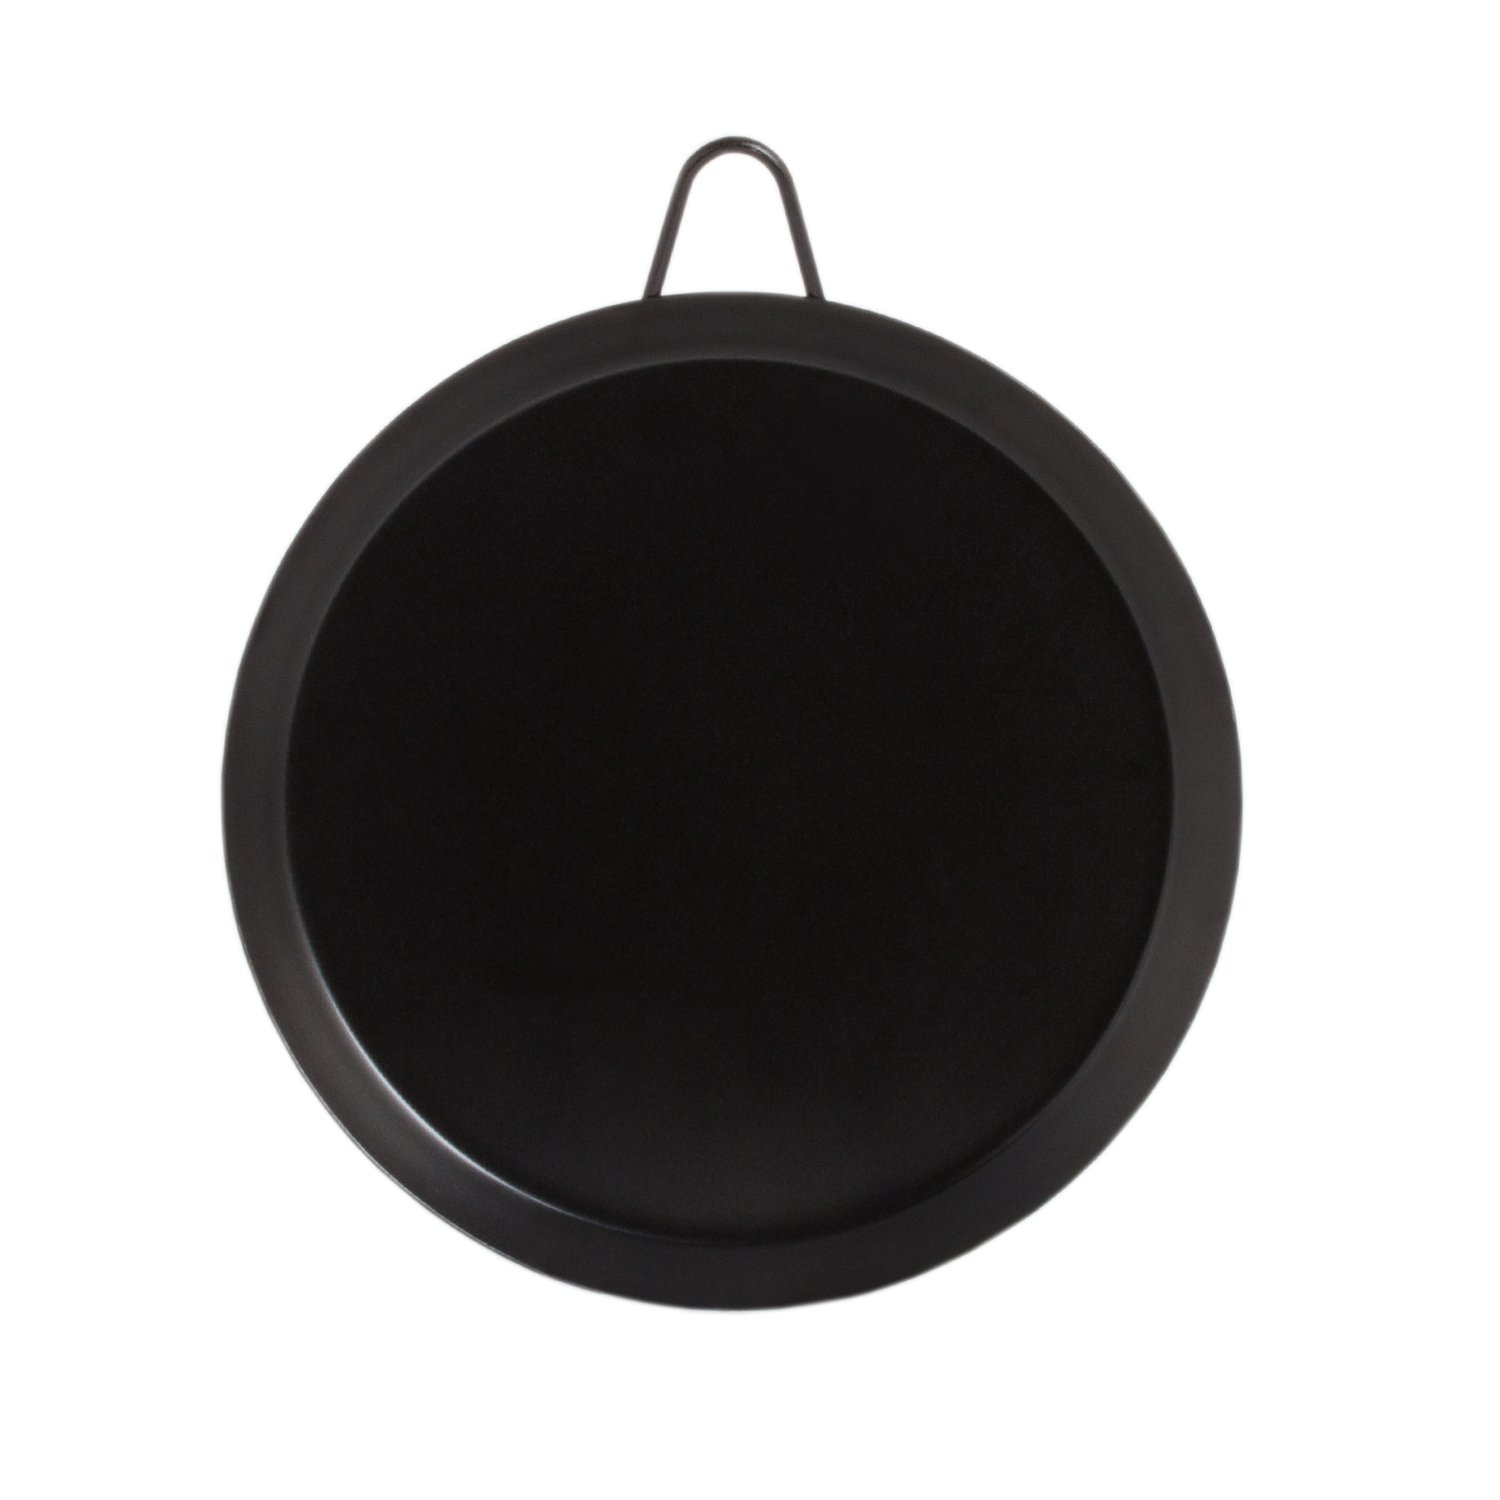 11 Inch Stovetop Griddle Pan - Carbon Steel Griddle Pan Comal Pan - Comal Para Tortillas